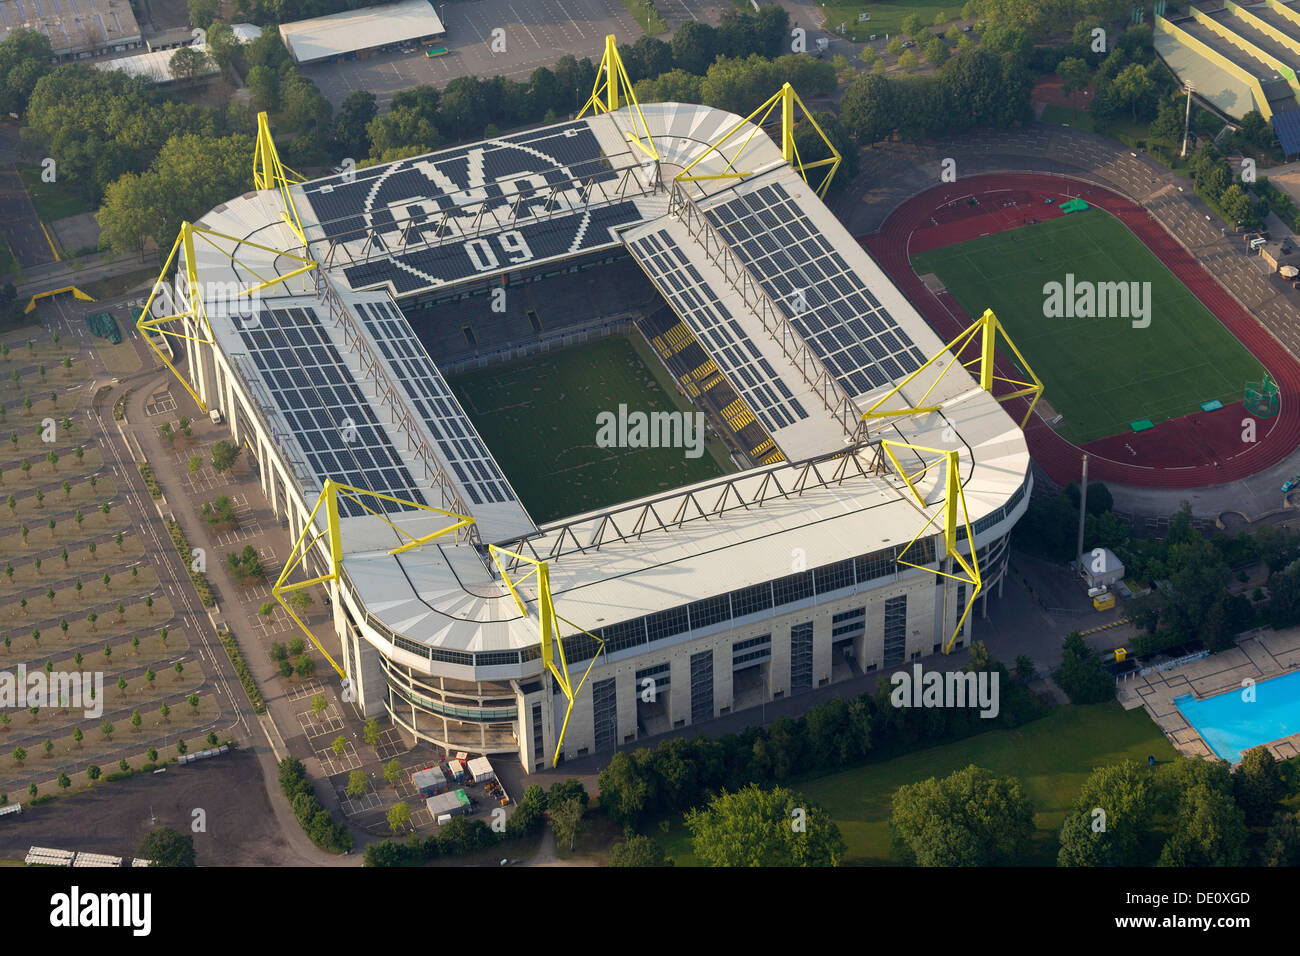 aerial view signaliduna park stadium signal iduna park stadium stock photo royalty free image. Black Bedroom Furniture Sets. Home Design Ideas